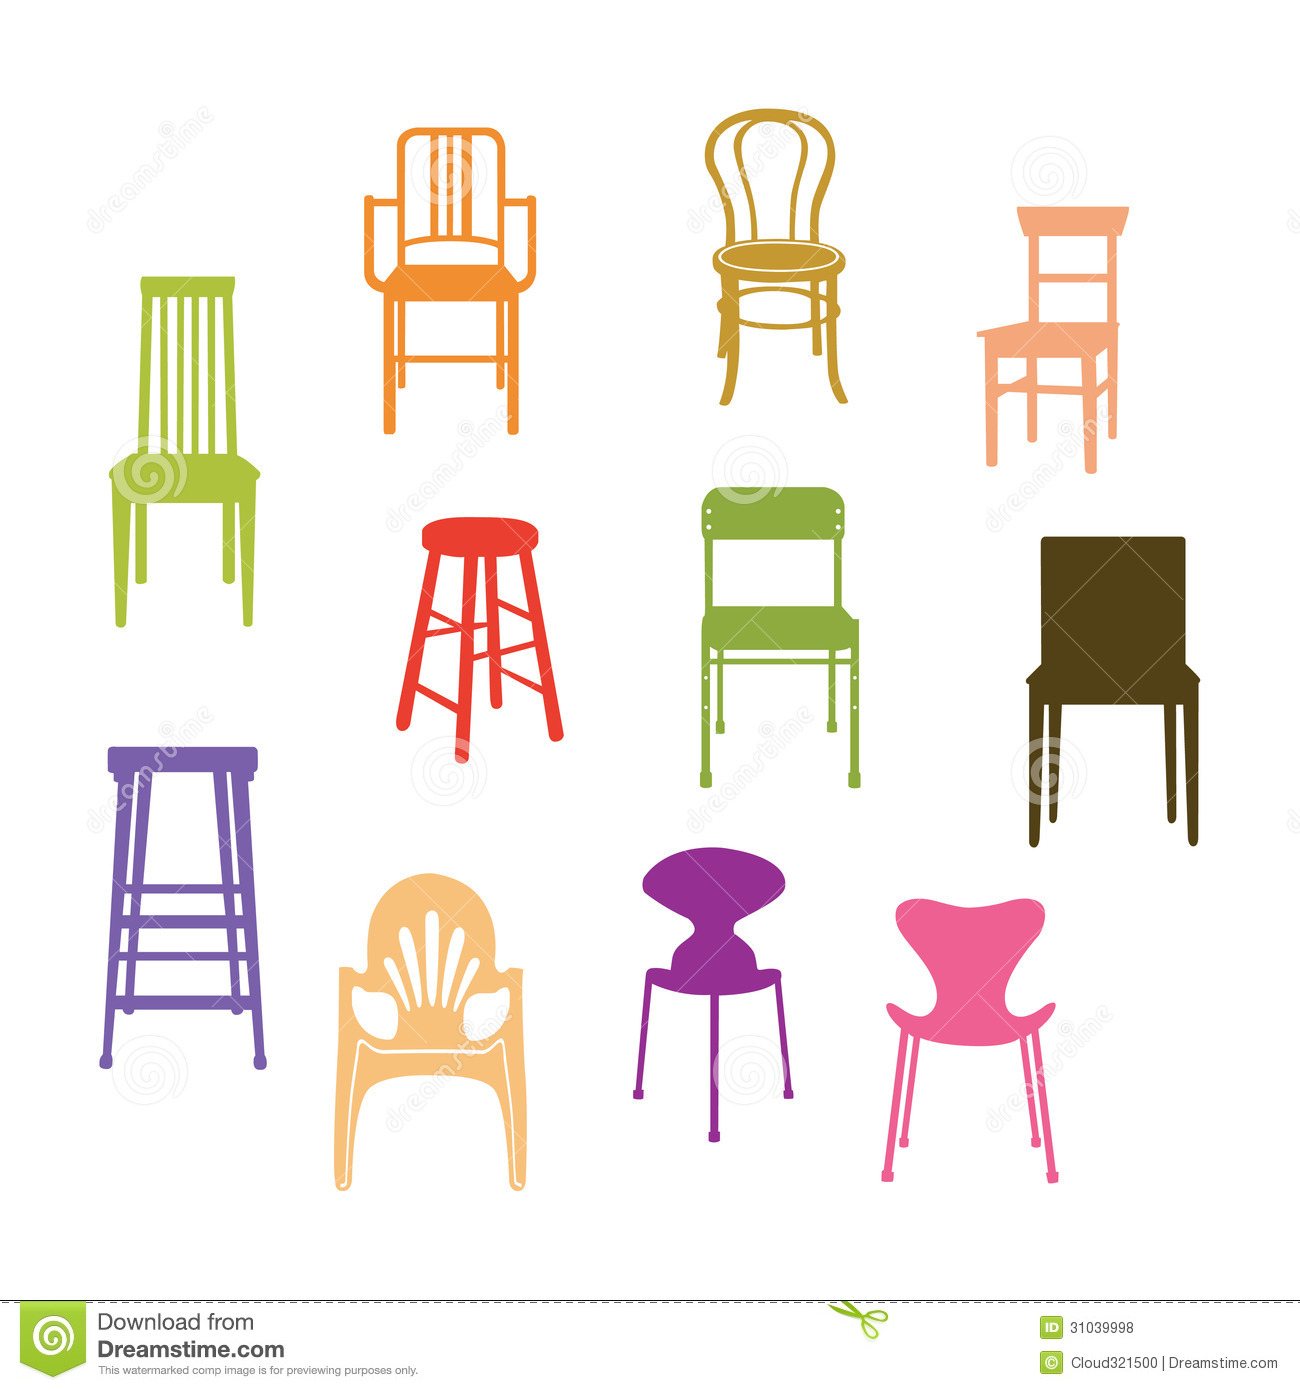 Chair set royalty free stock photos image 31039998